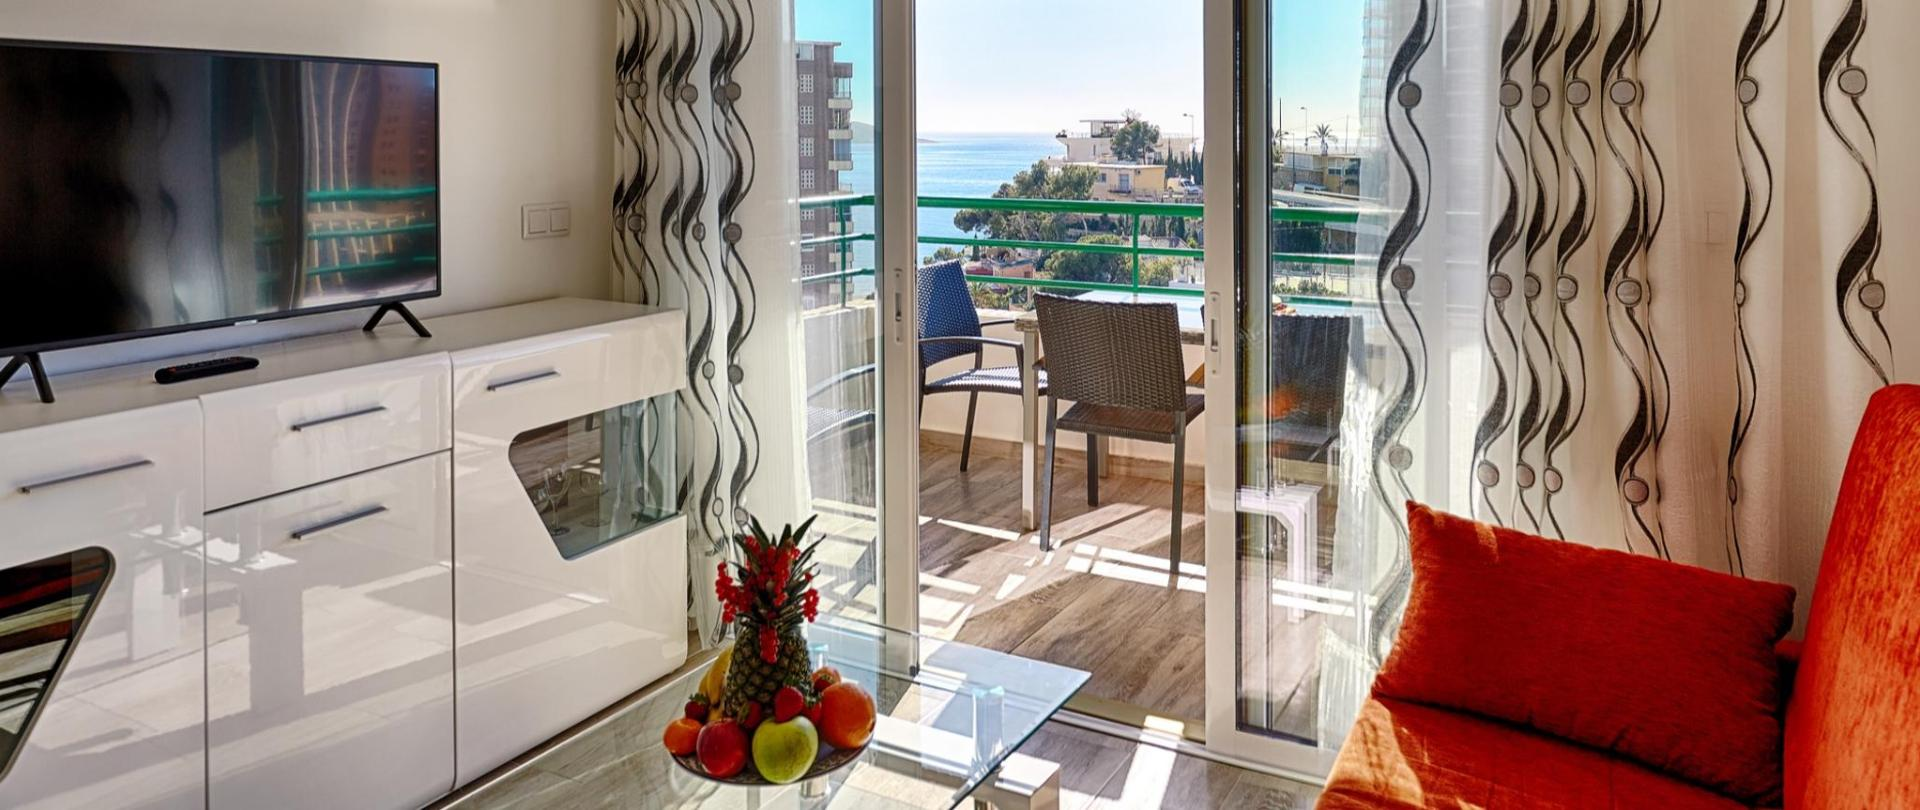 Sonrisa Apartments - Superior Apartments with Balcony and Sea View9.jpg